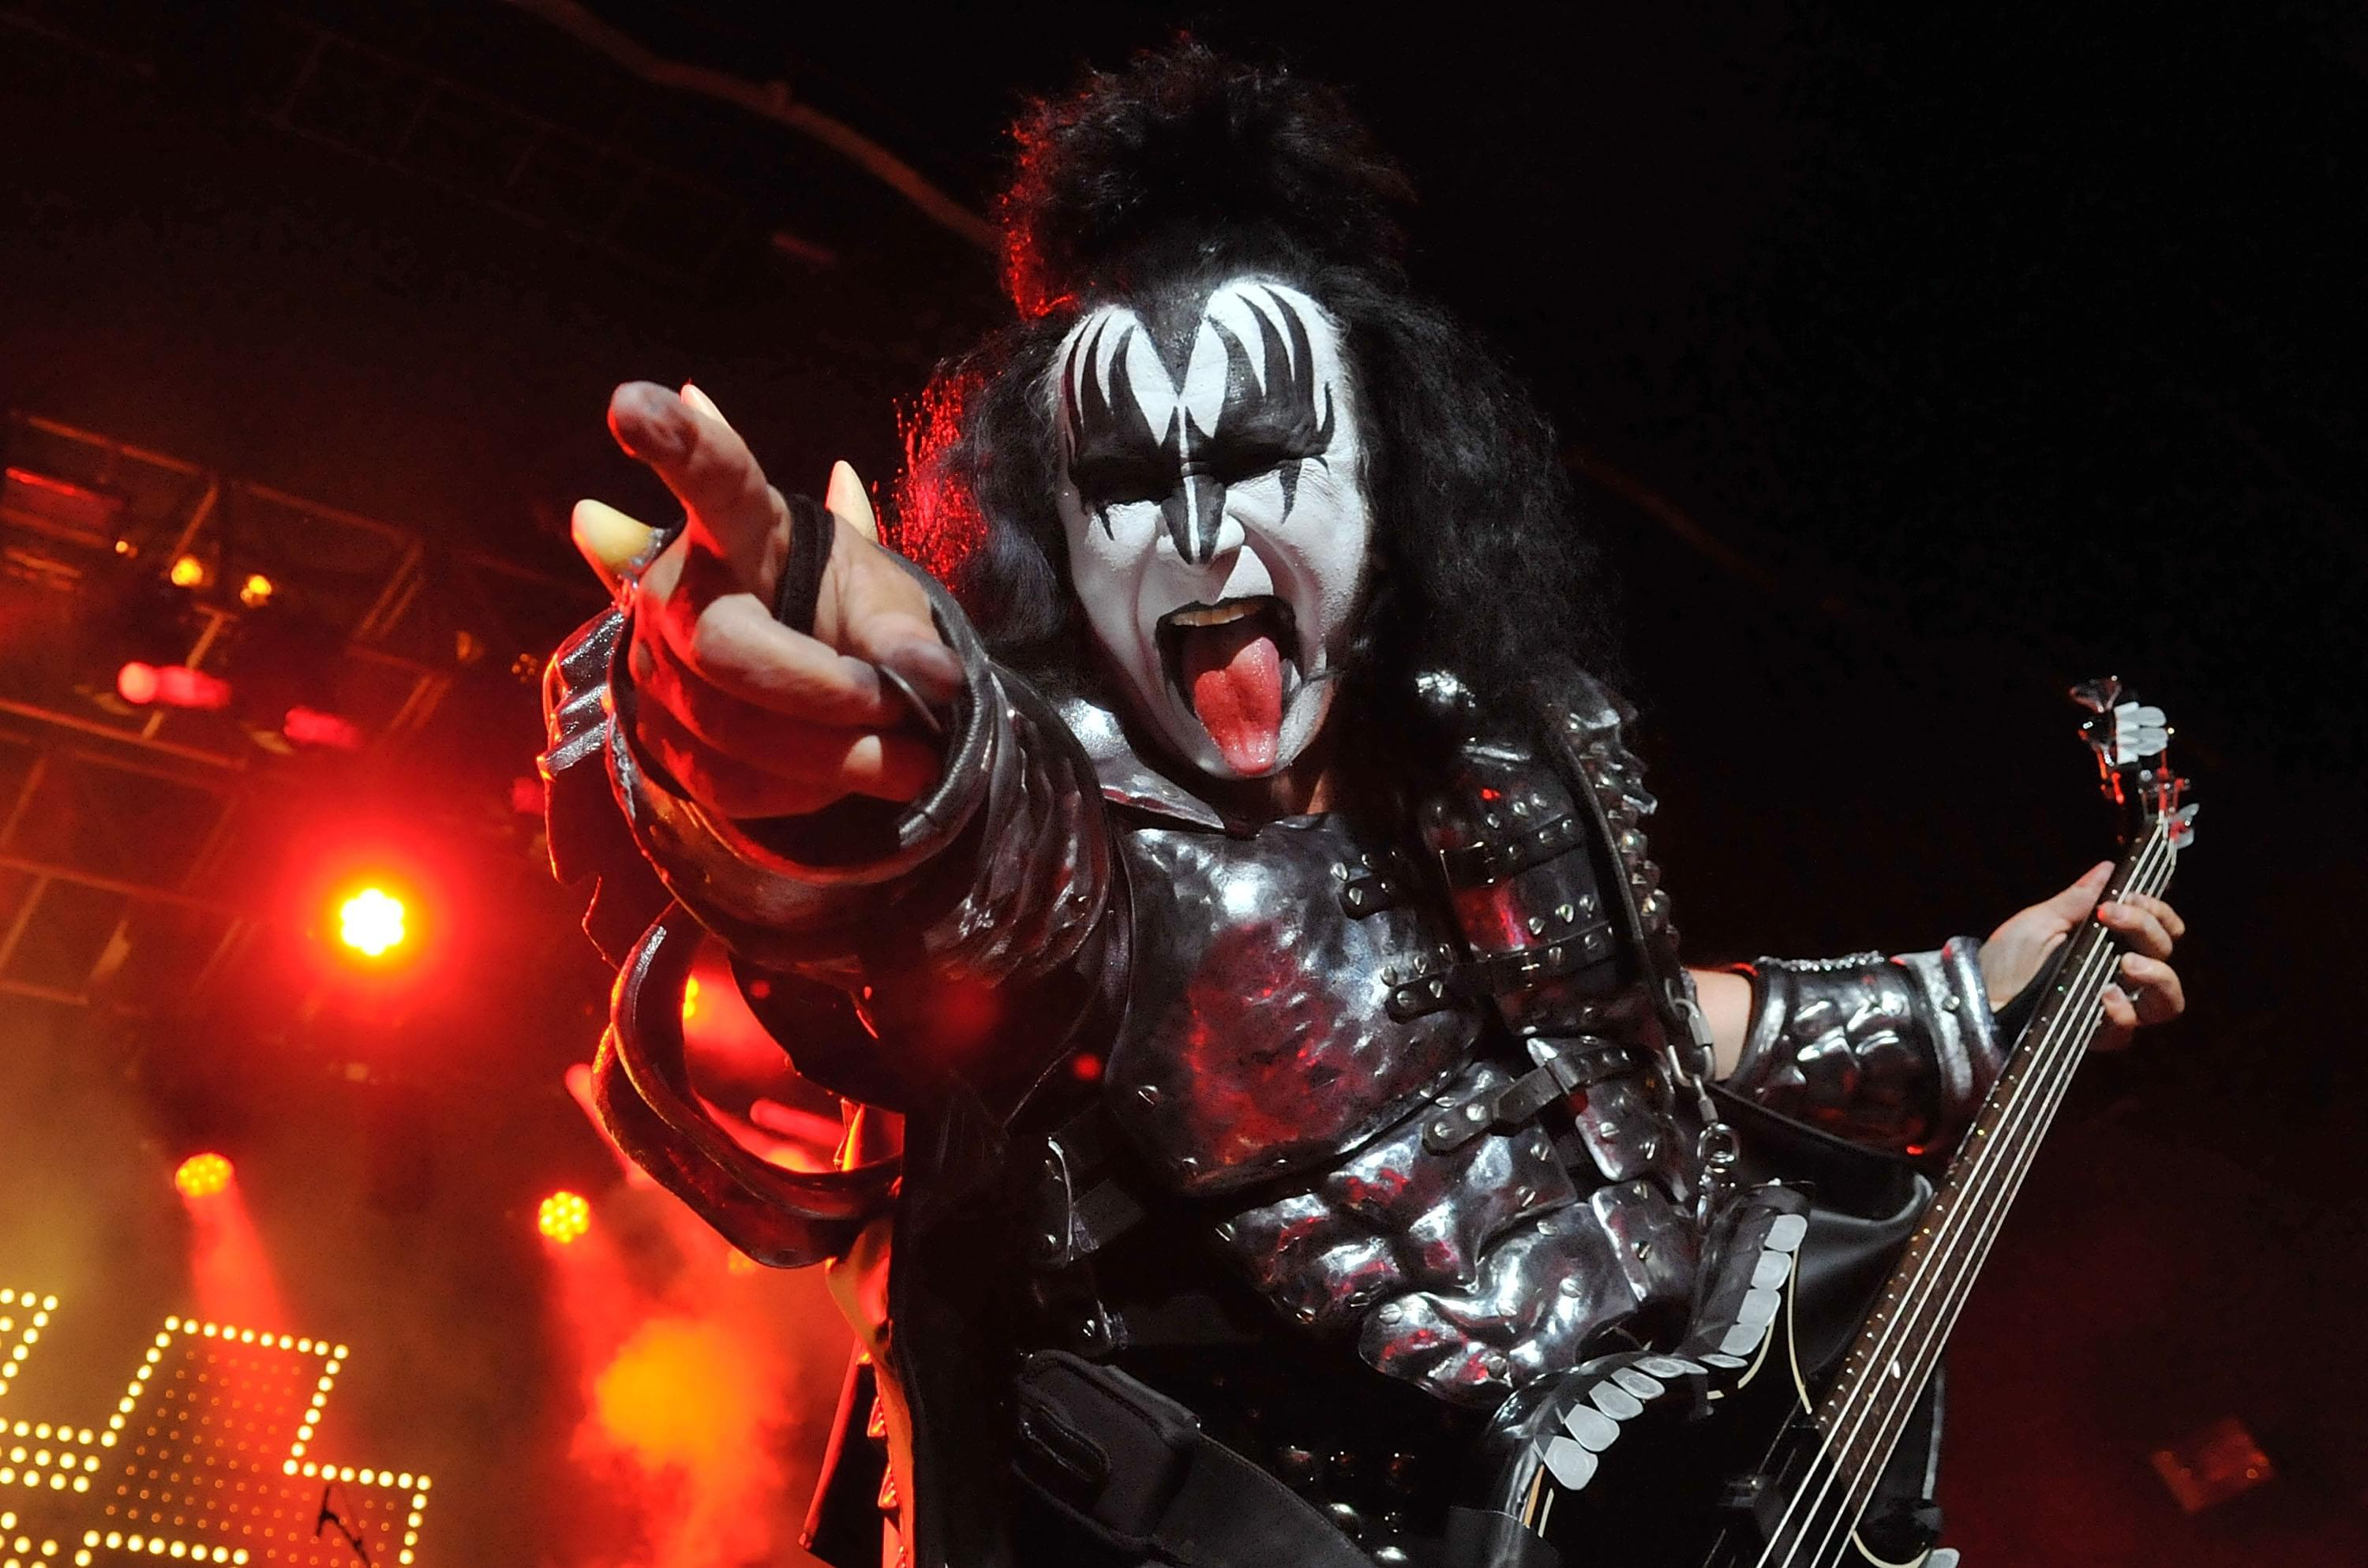 Gene Simmons Gives A Pep Talk & Some Praise During The COVID-19 Crisis